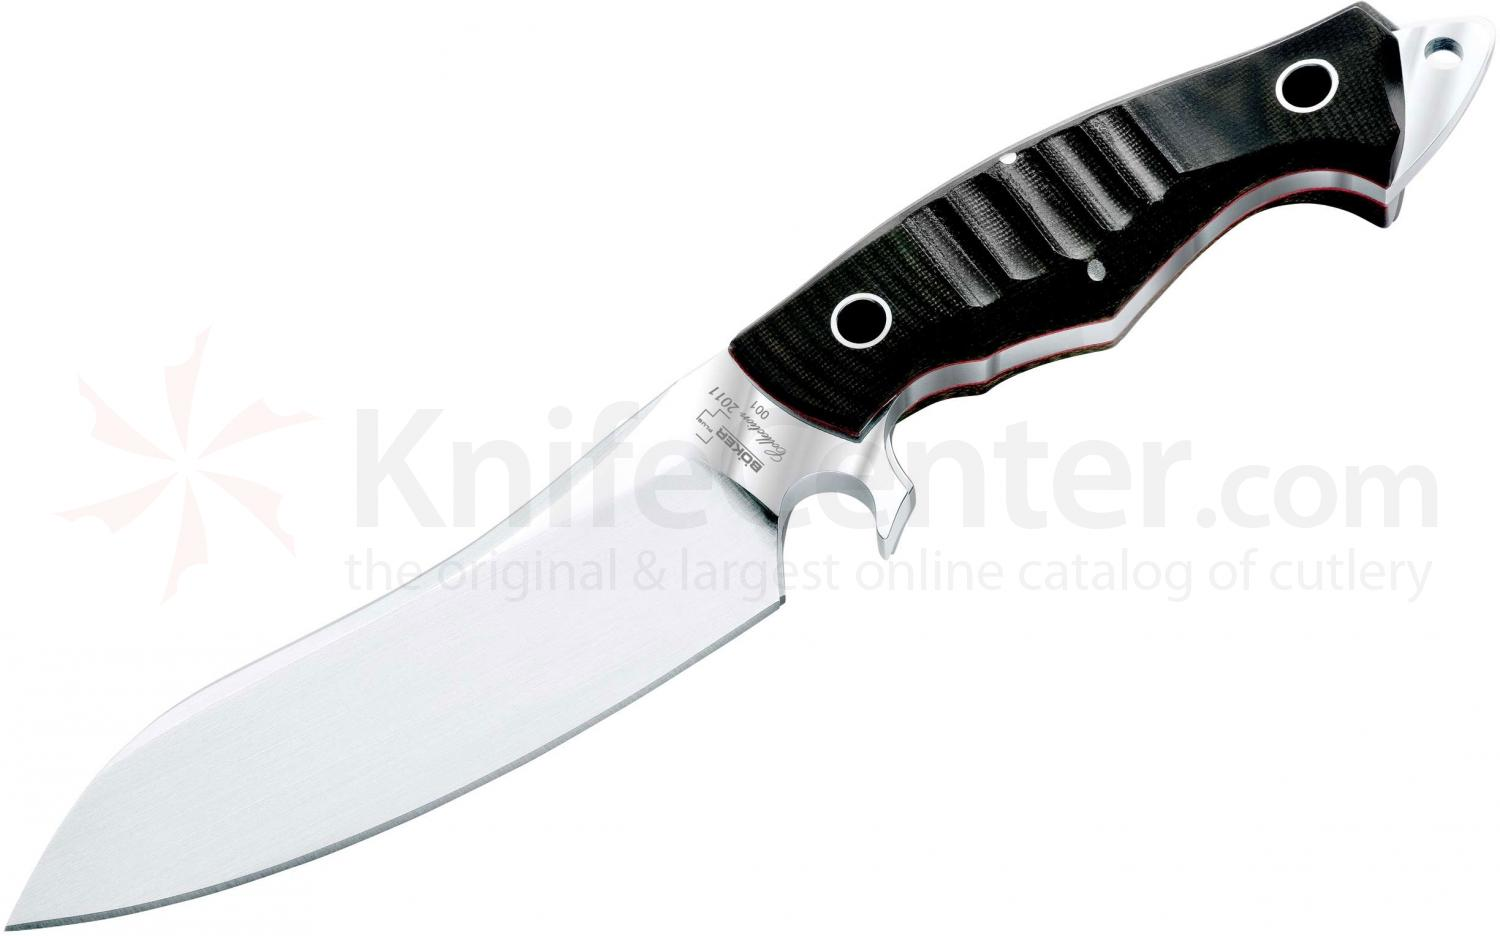 Boker Plus Collection 2011 Fixed 6 inch Blade, Micarta Handles (02BO2011)